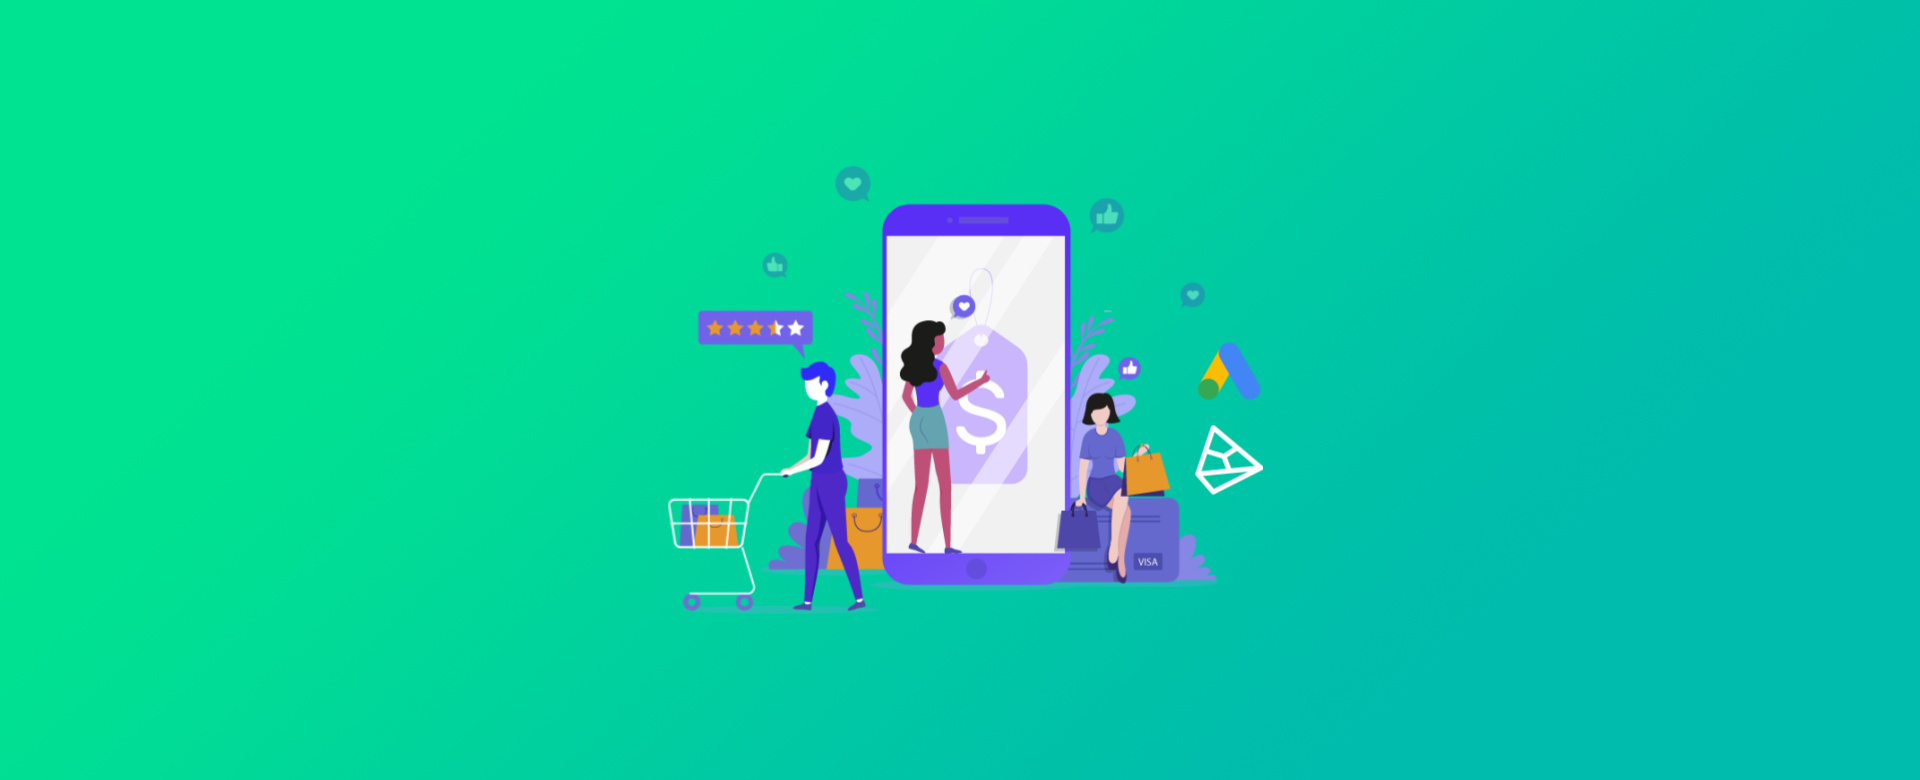 Estrutura Pareto de Google Shopping – Finalista no Google Awards 2017 e 2018